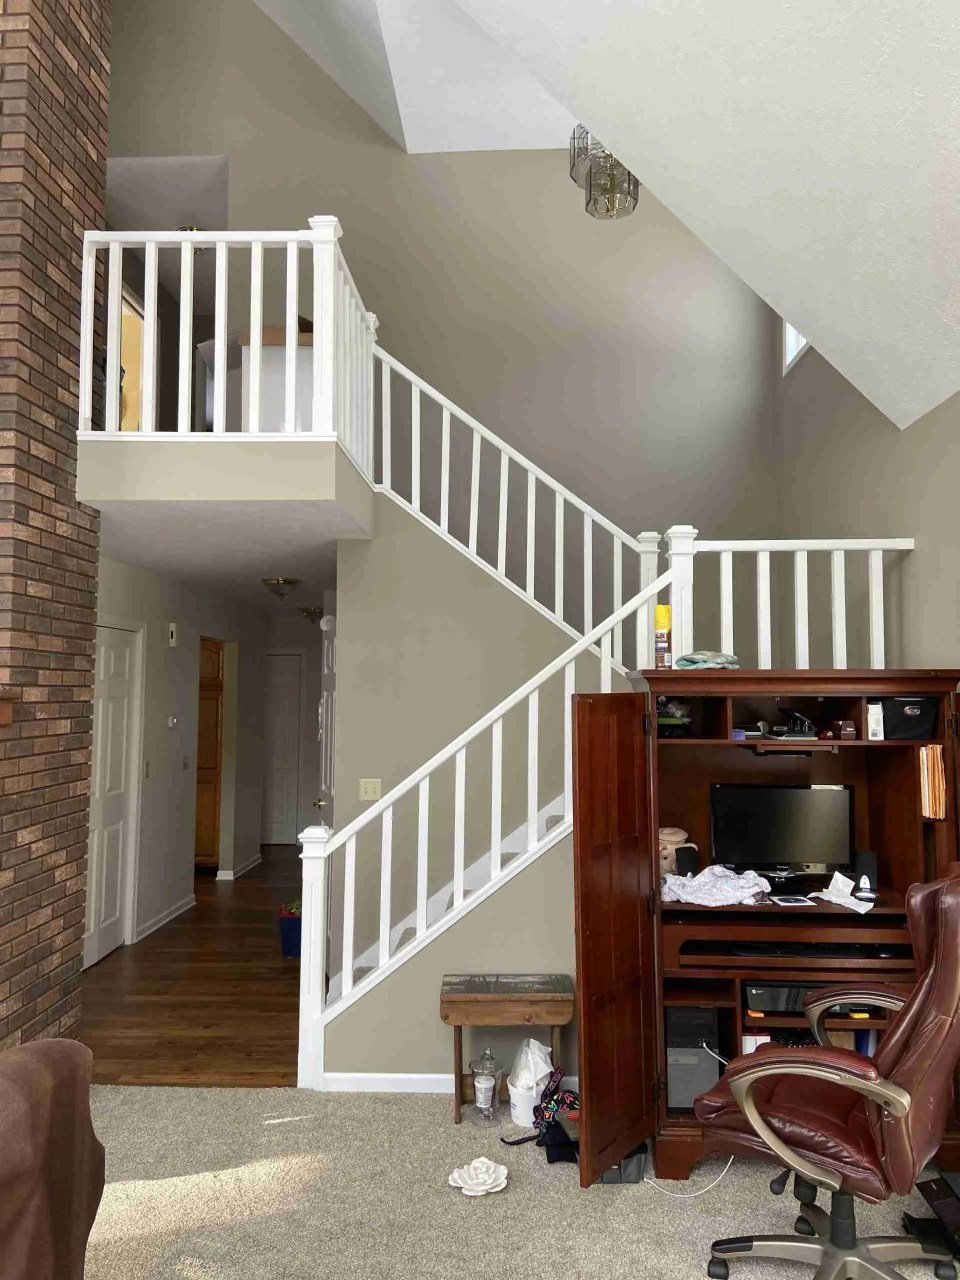 View of the stairs in the author's new home